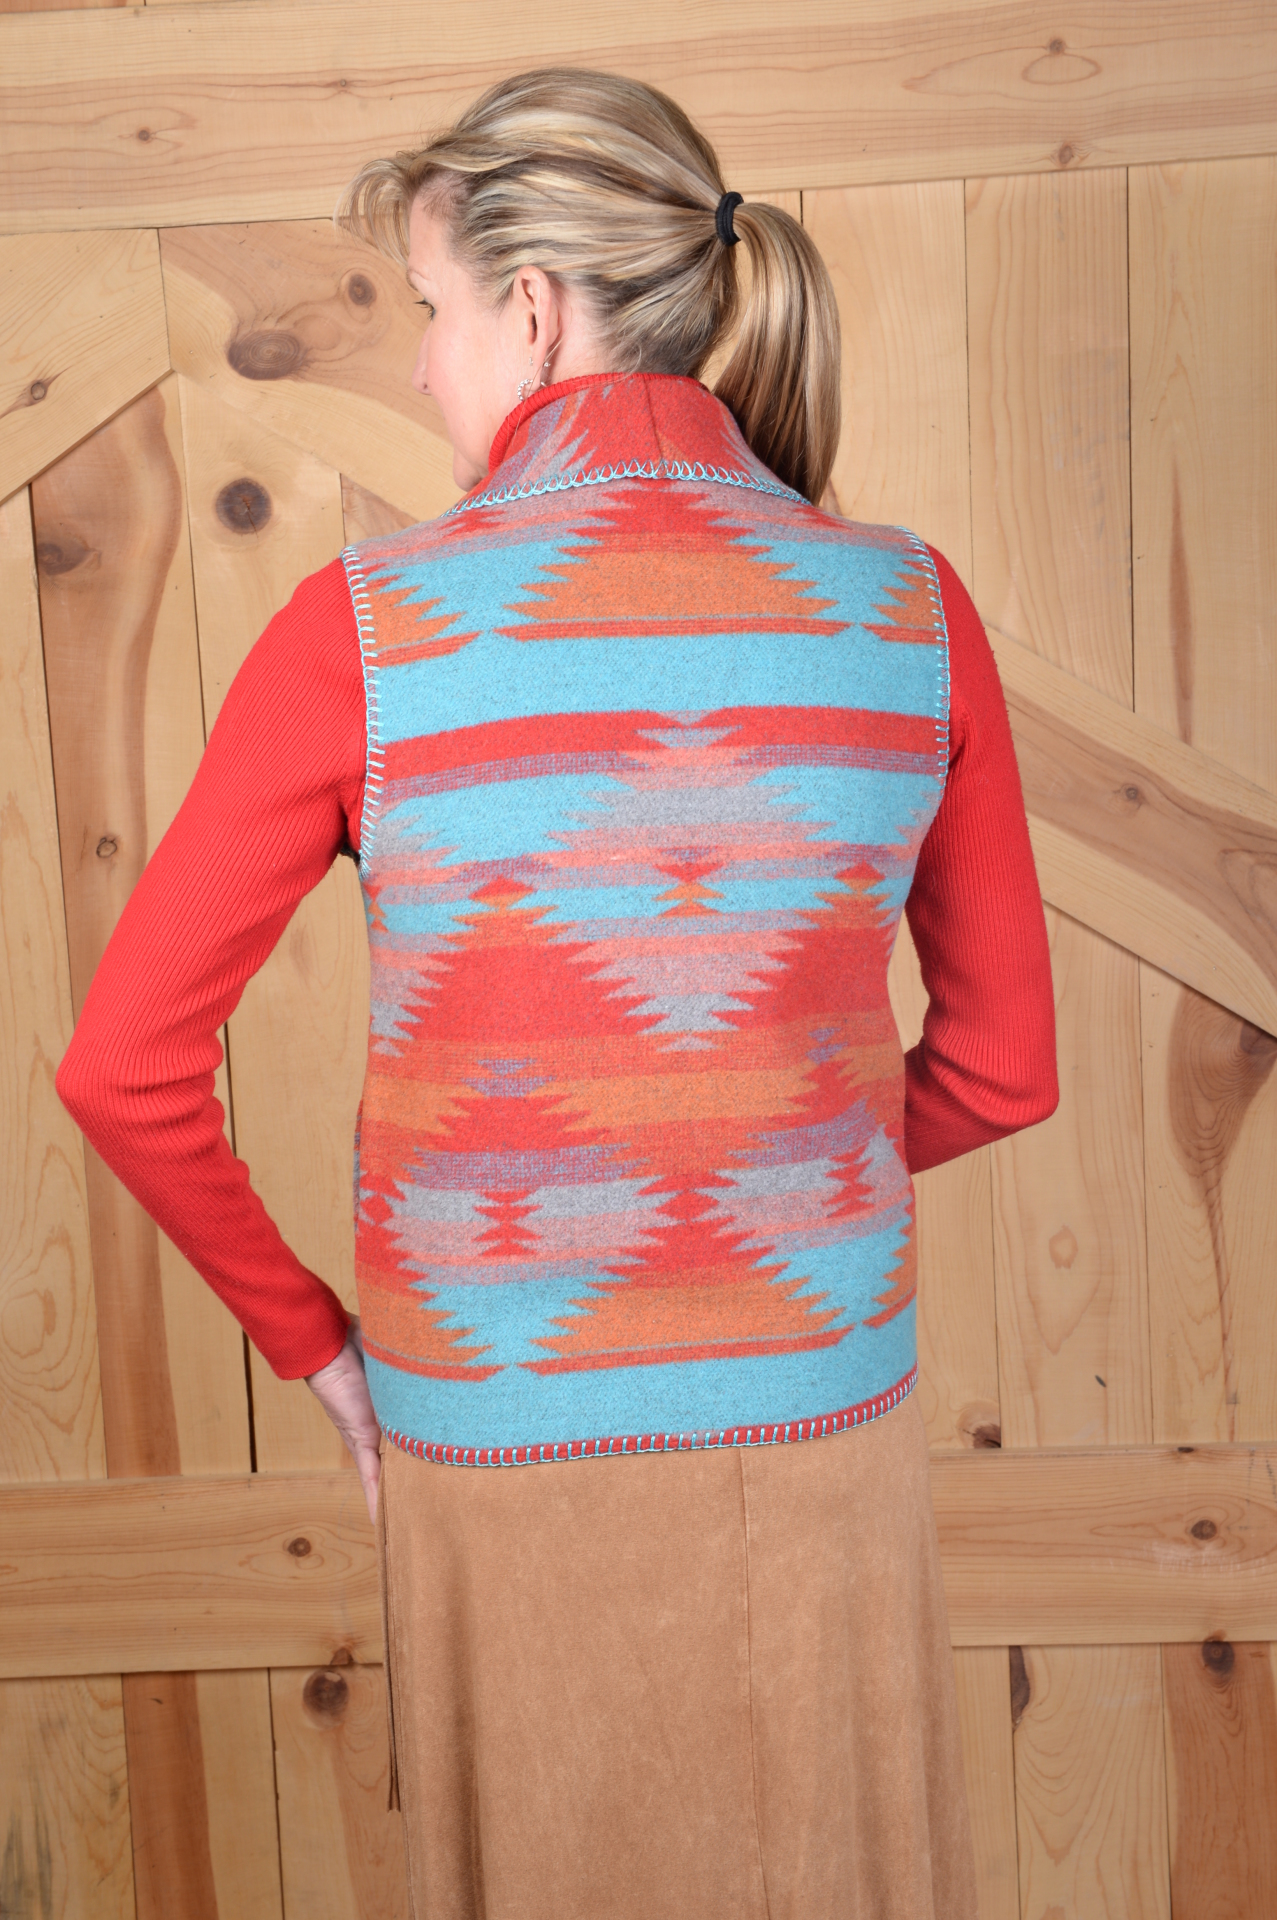 130TSU - TEQUILLA SUNRISE SHAWL VEST - BACK                   $99.95